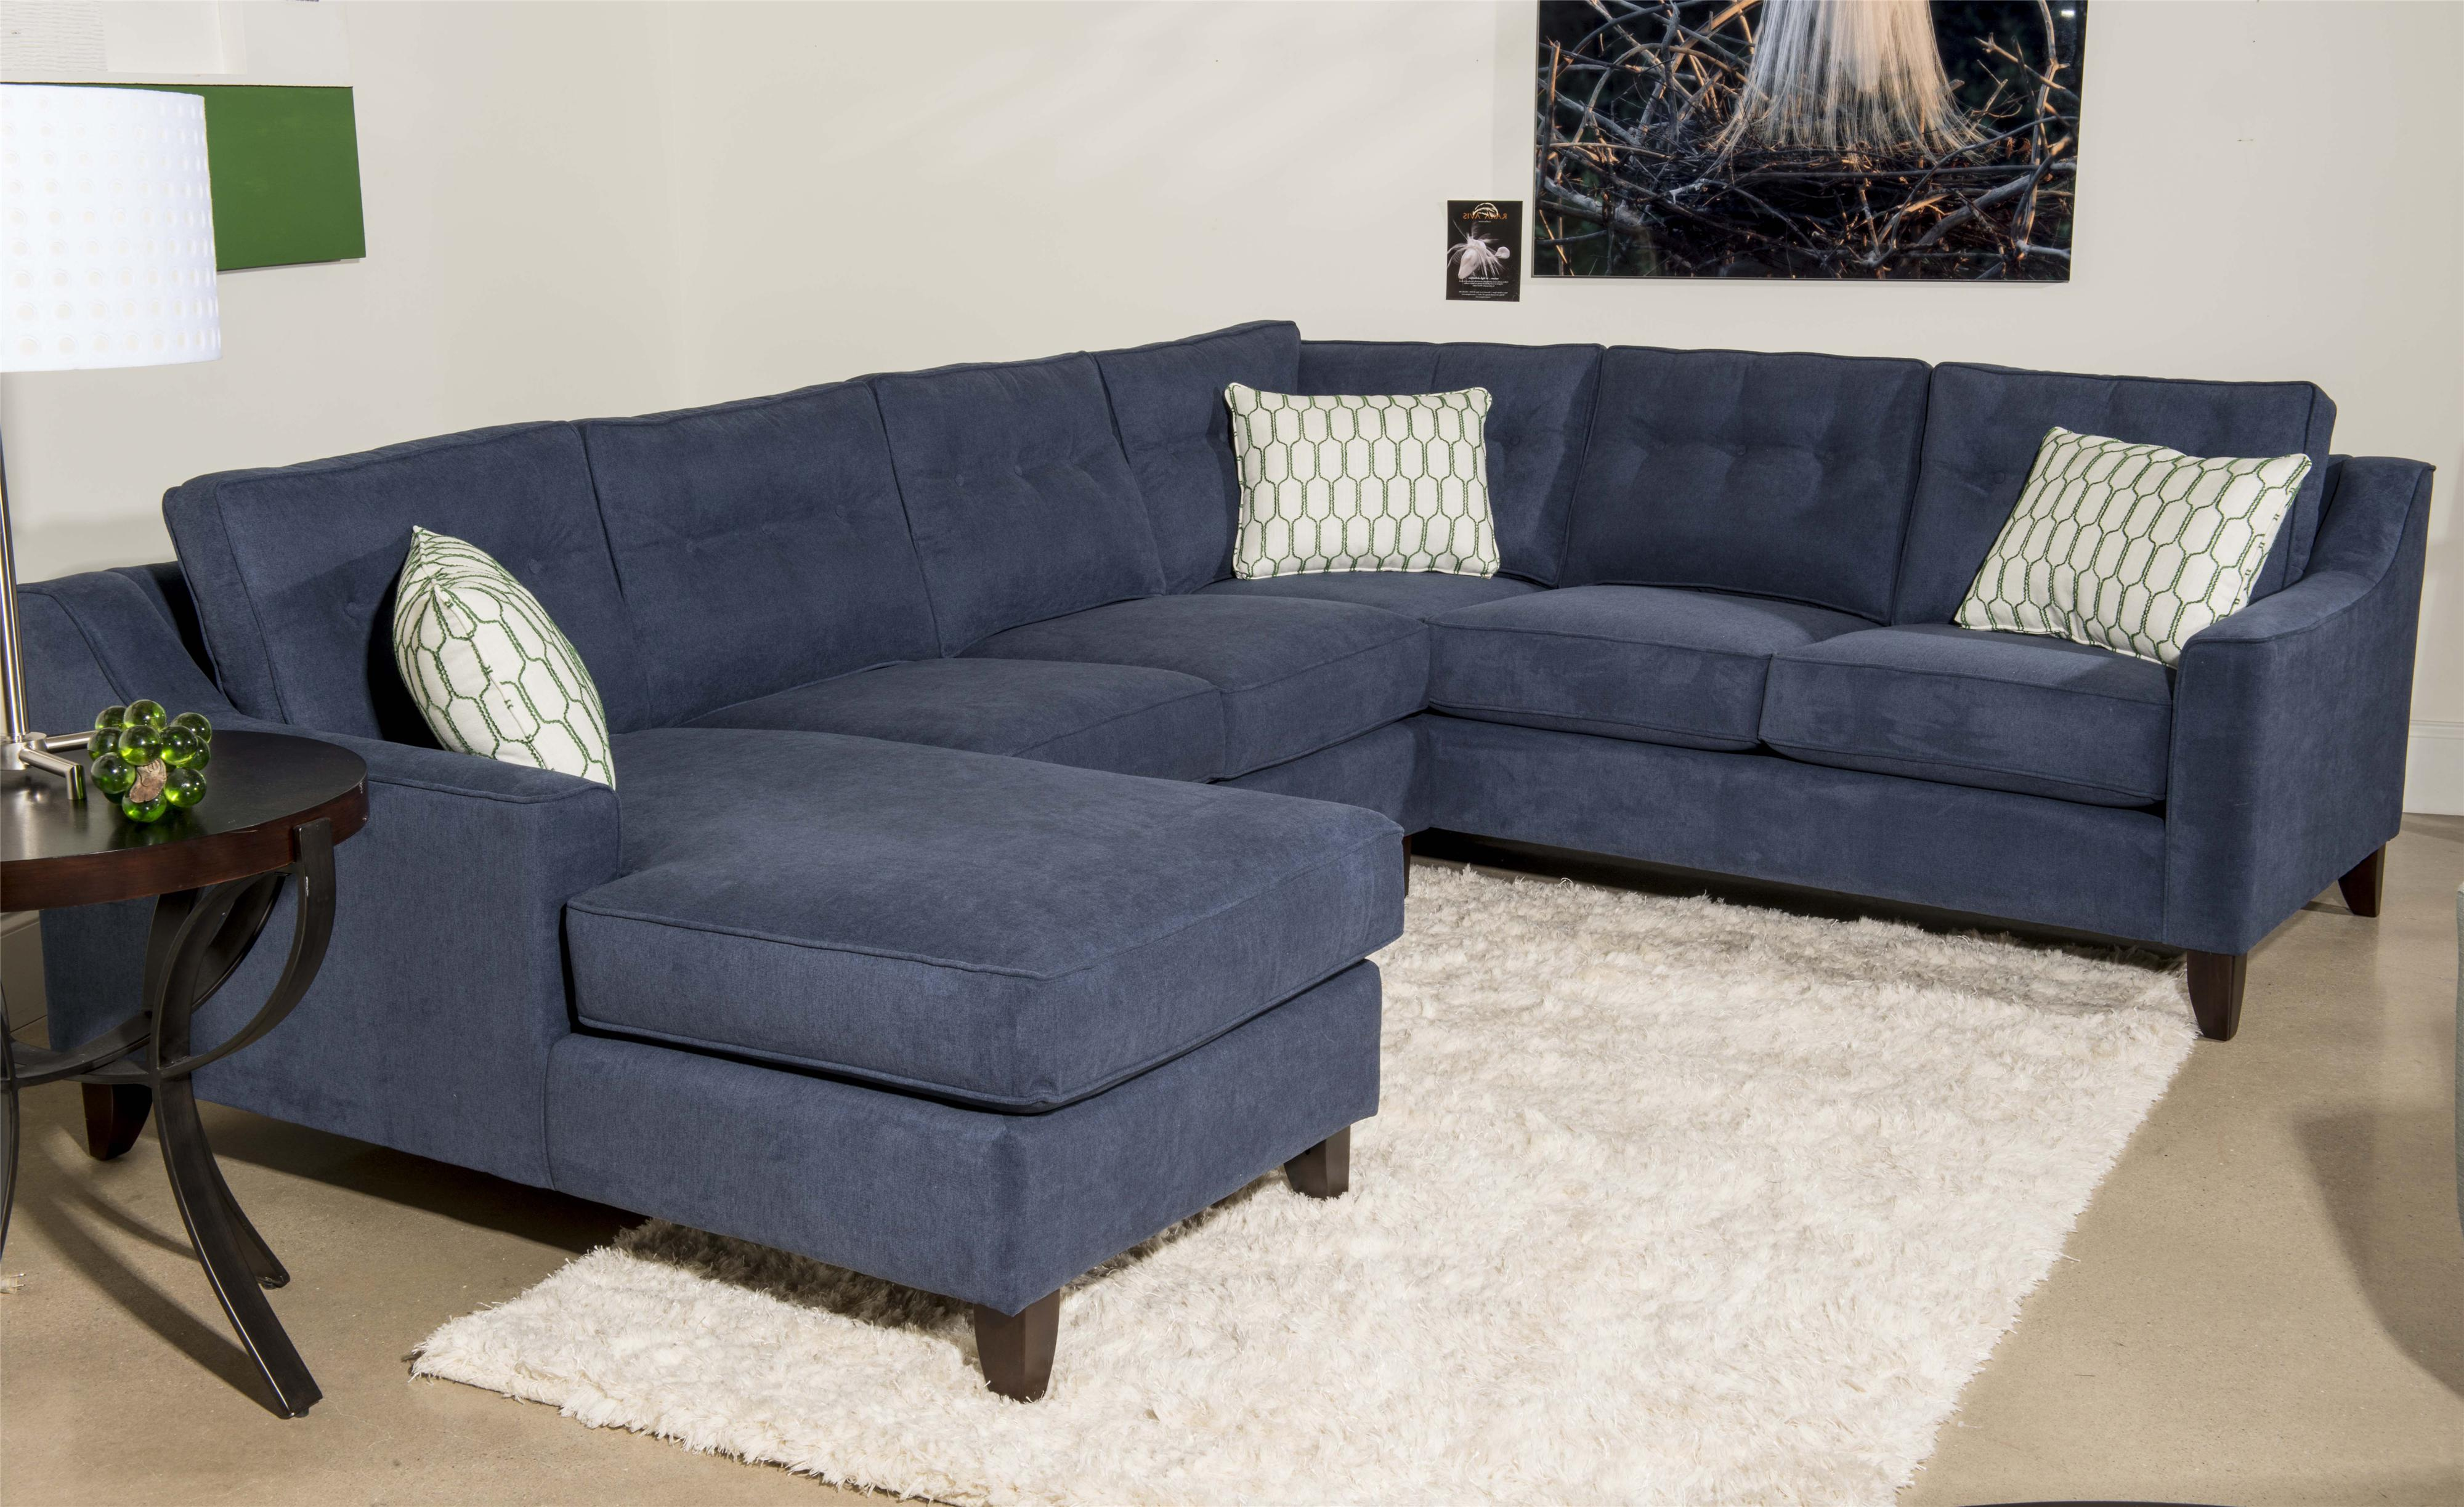 Klaussner audrina contemporary 3 piece sectional sofa with for 3 piece sectional sofas with chaise